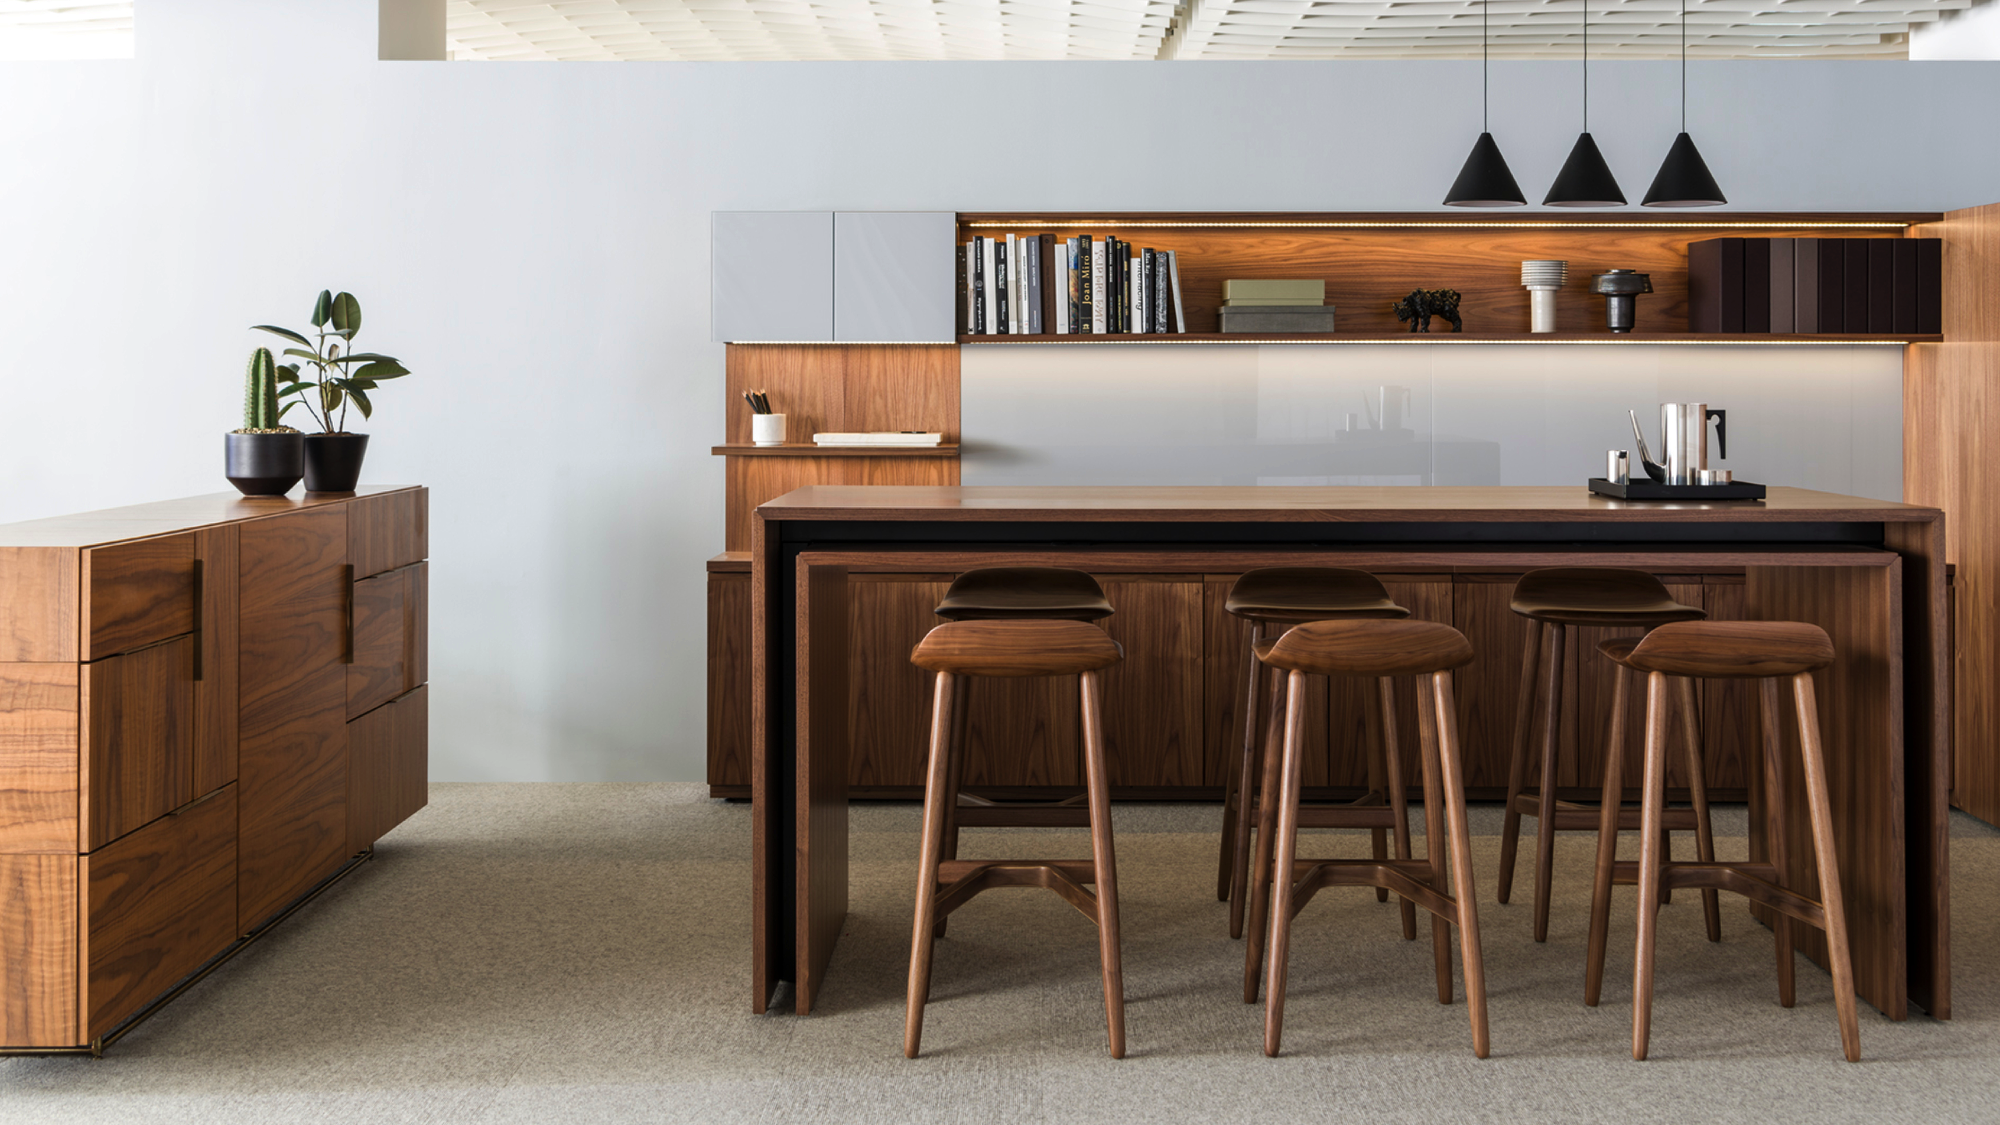 Crosshatch Stools, Peer Table And Domino Credenza By Geiger Furniture.